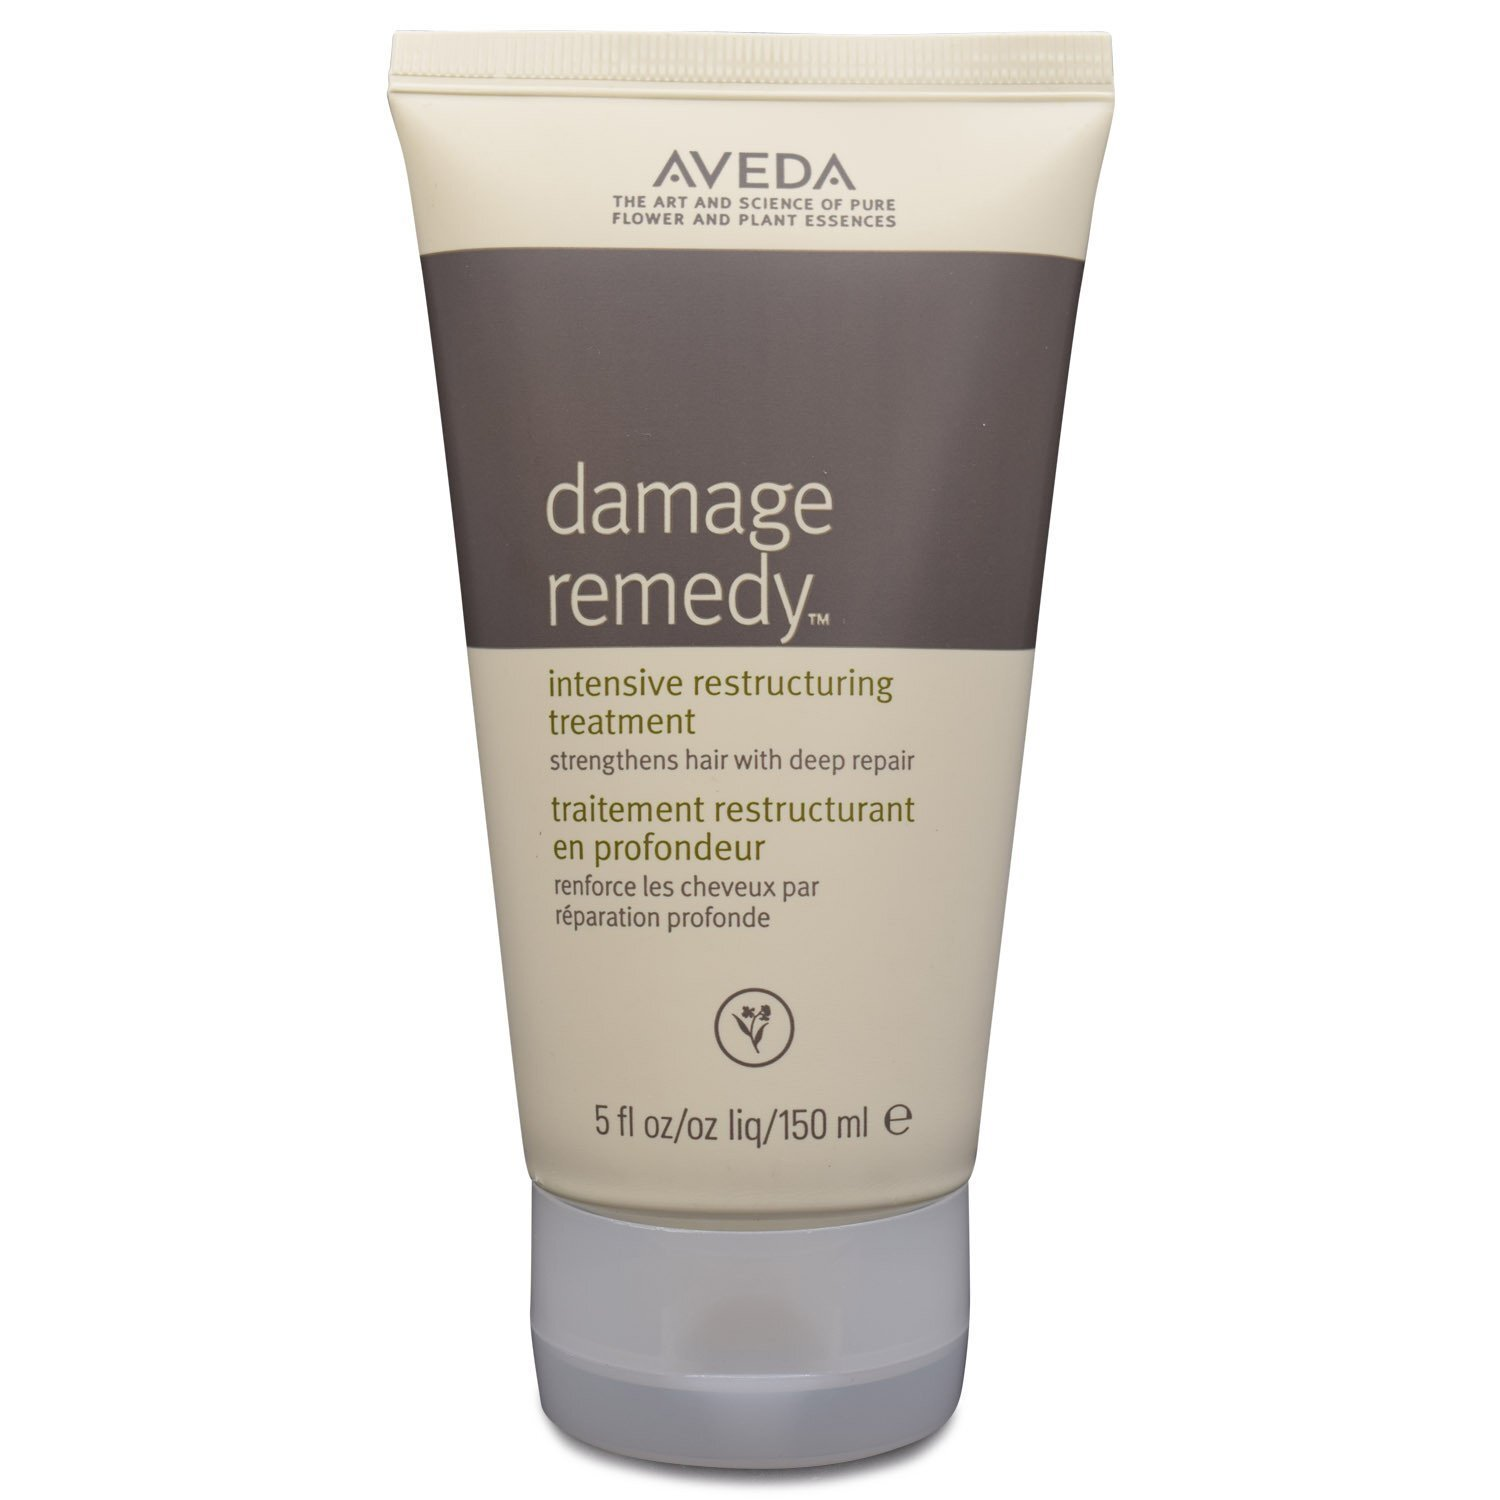 Aveda Damage remedy Treatment